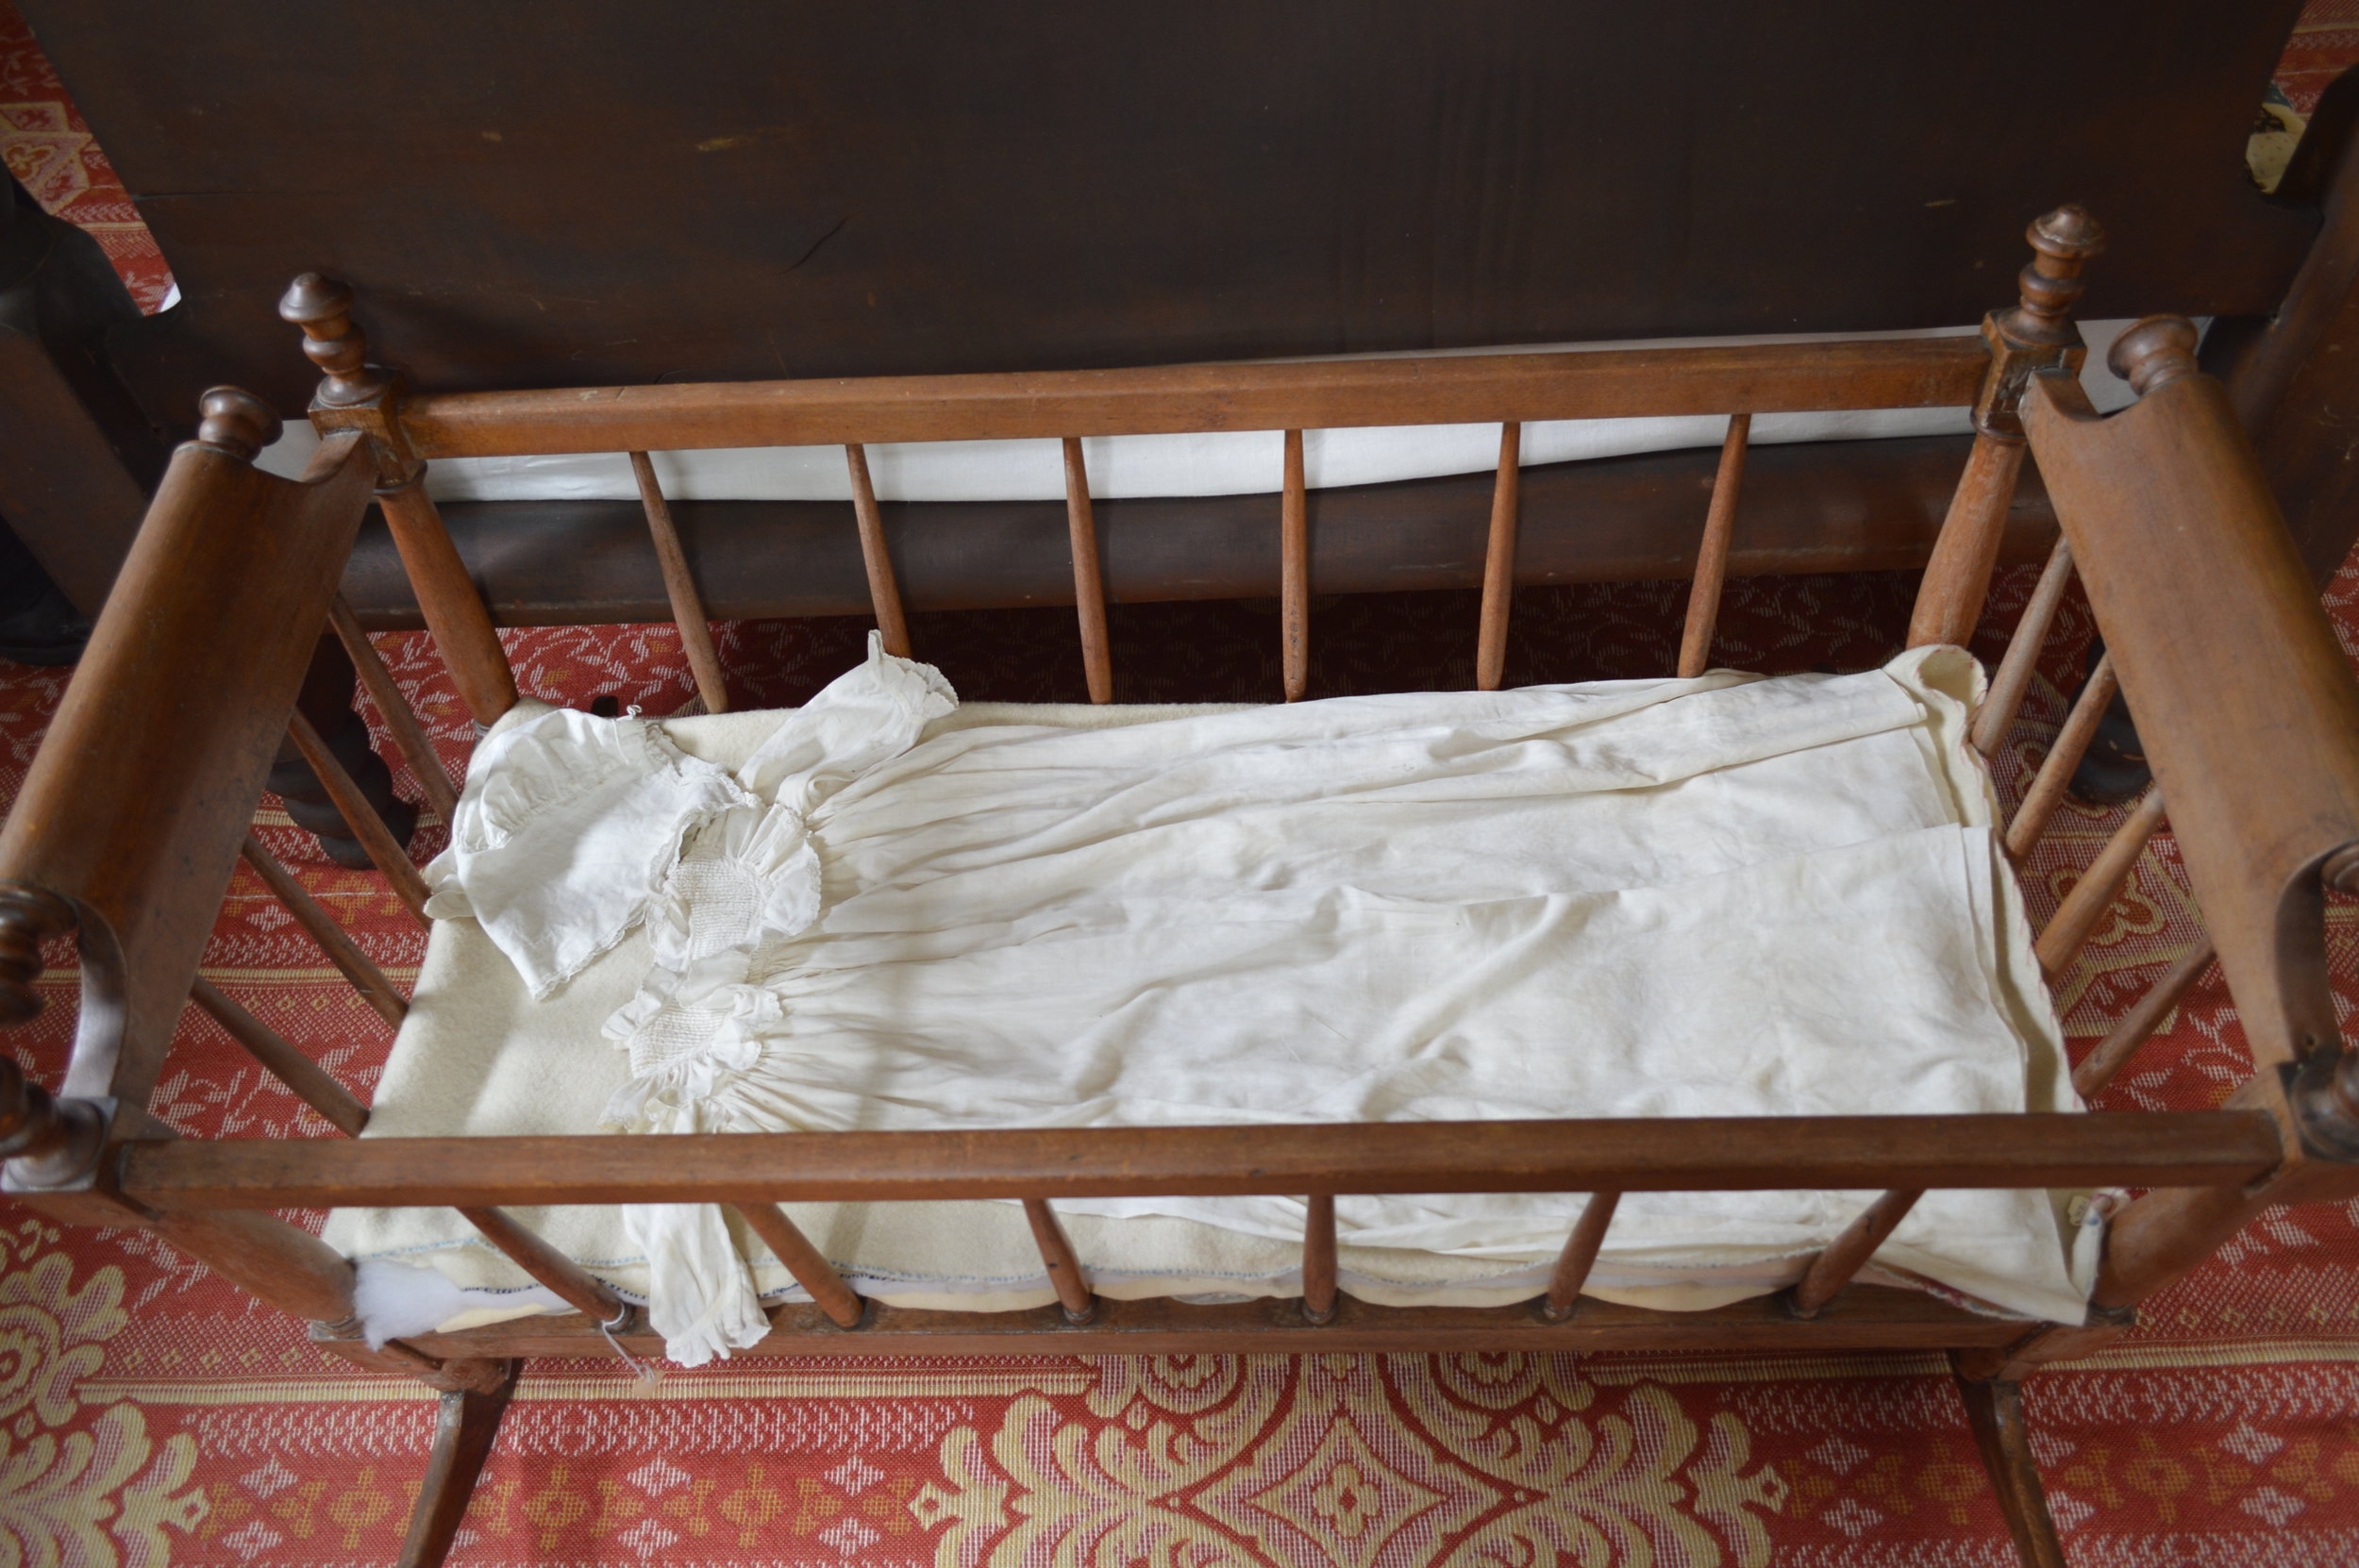 Next to the parents' bed was a rocking cradle with a laceembroidered cap and gown for the baby.